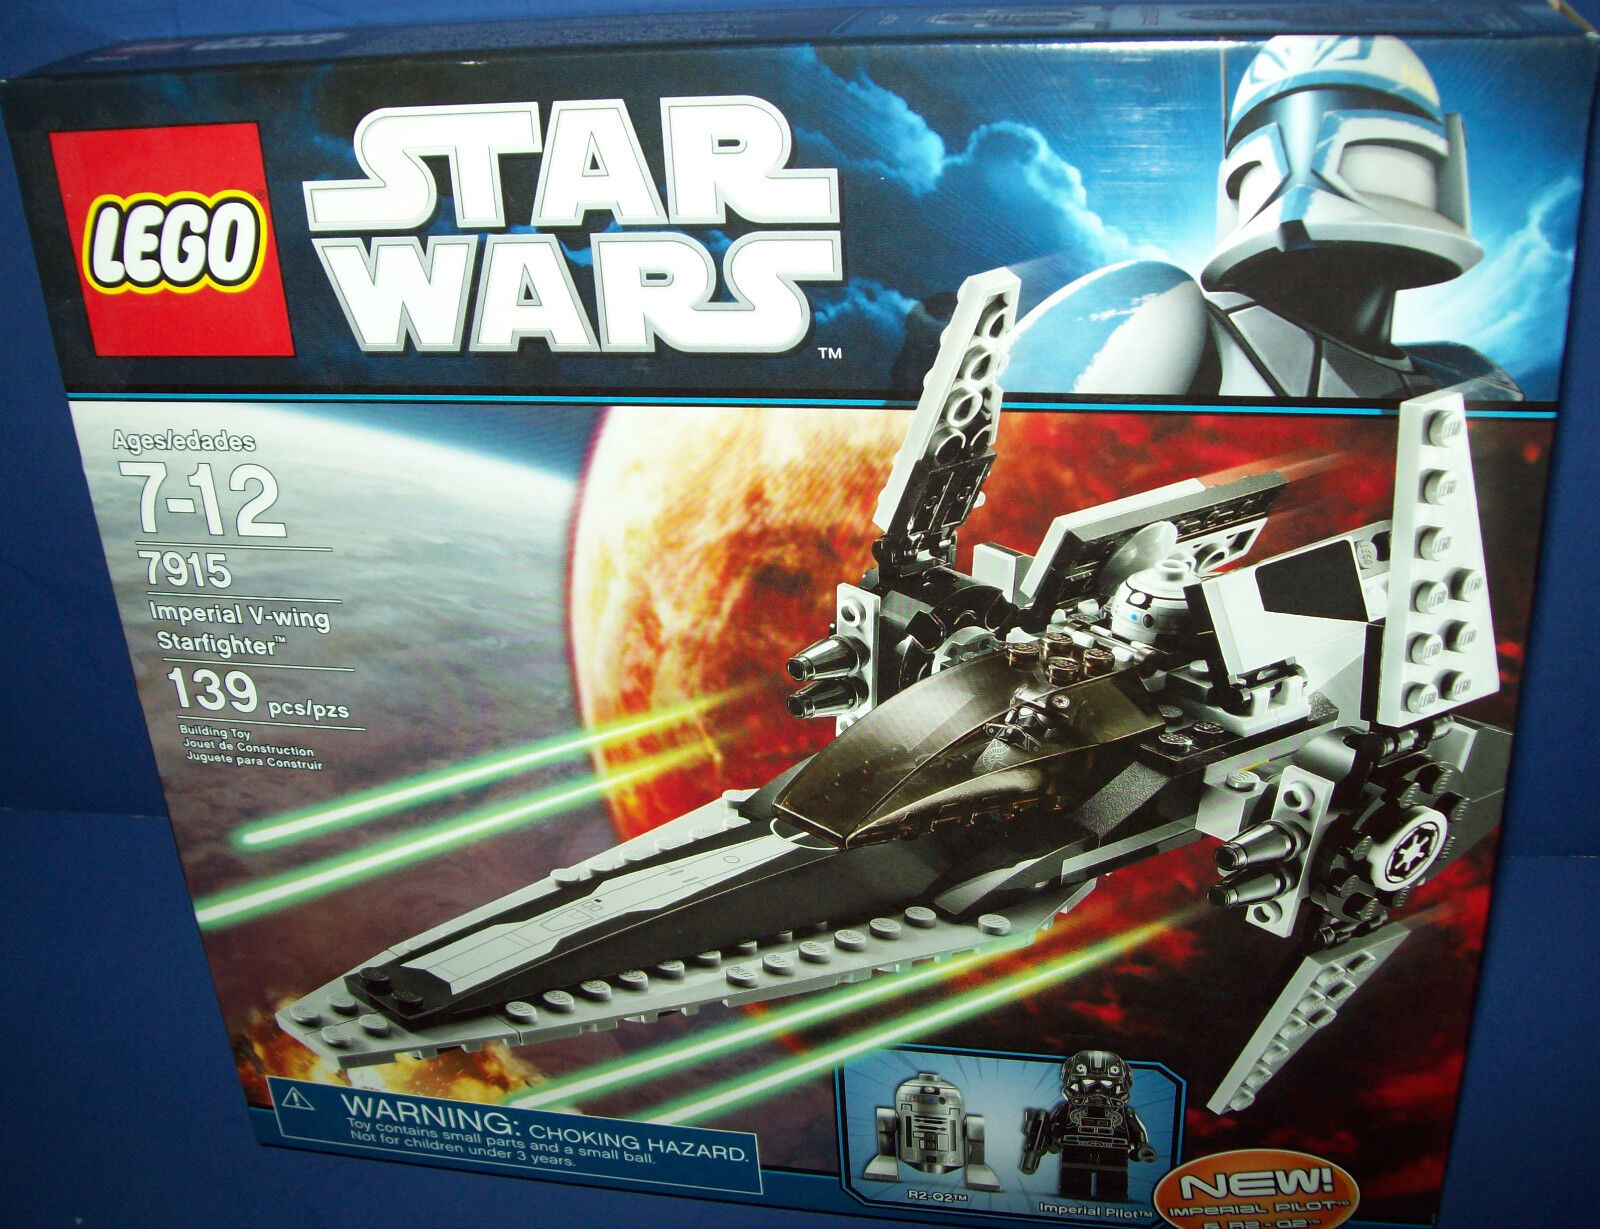 LEGO 7915 STAR WARS - IMPERIAL V-WING STARFIGHTER NEW in BOX RetiROT